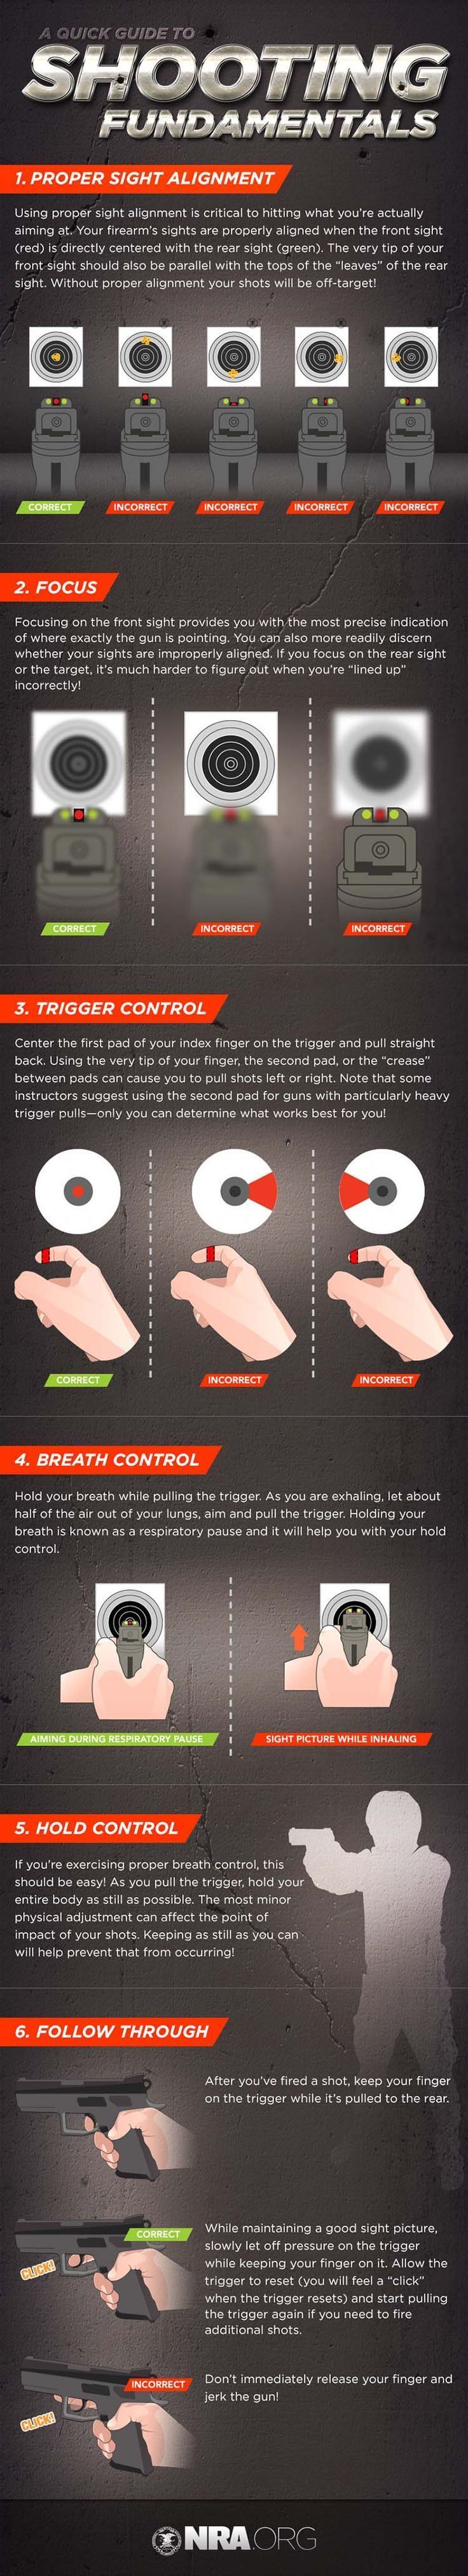 Shooting Fundamentals   Follow These Tips and Shoot Like a Pro   Skills And Techniques by Survival Life at survivallife.com/...